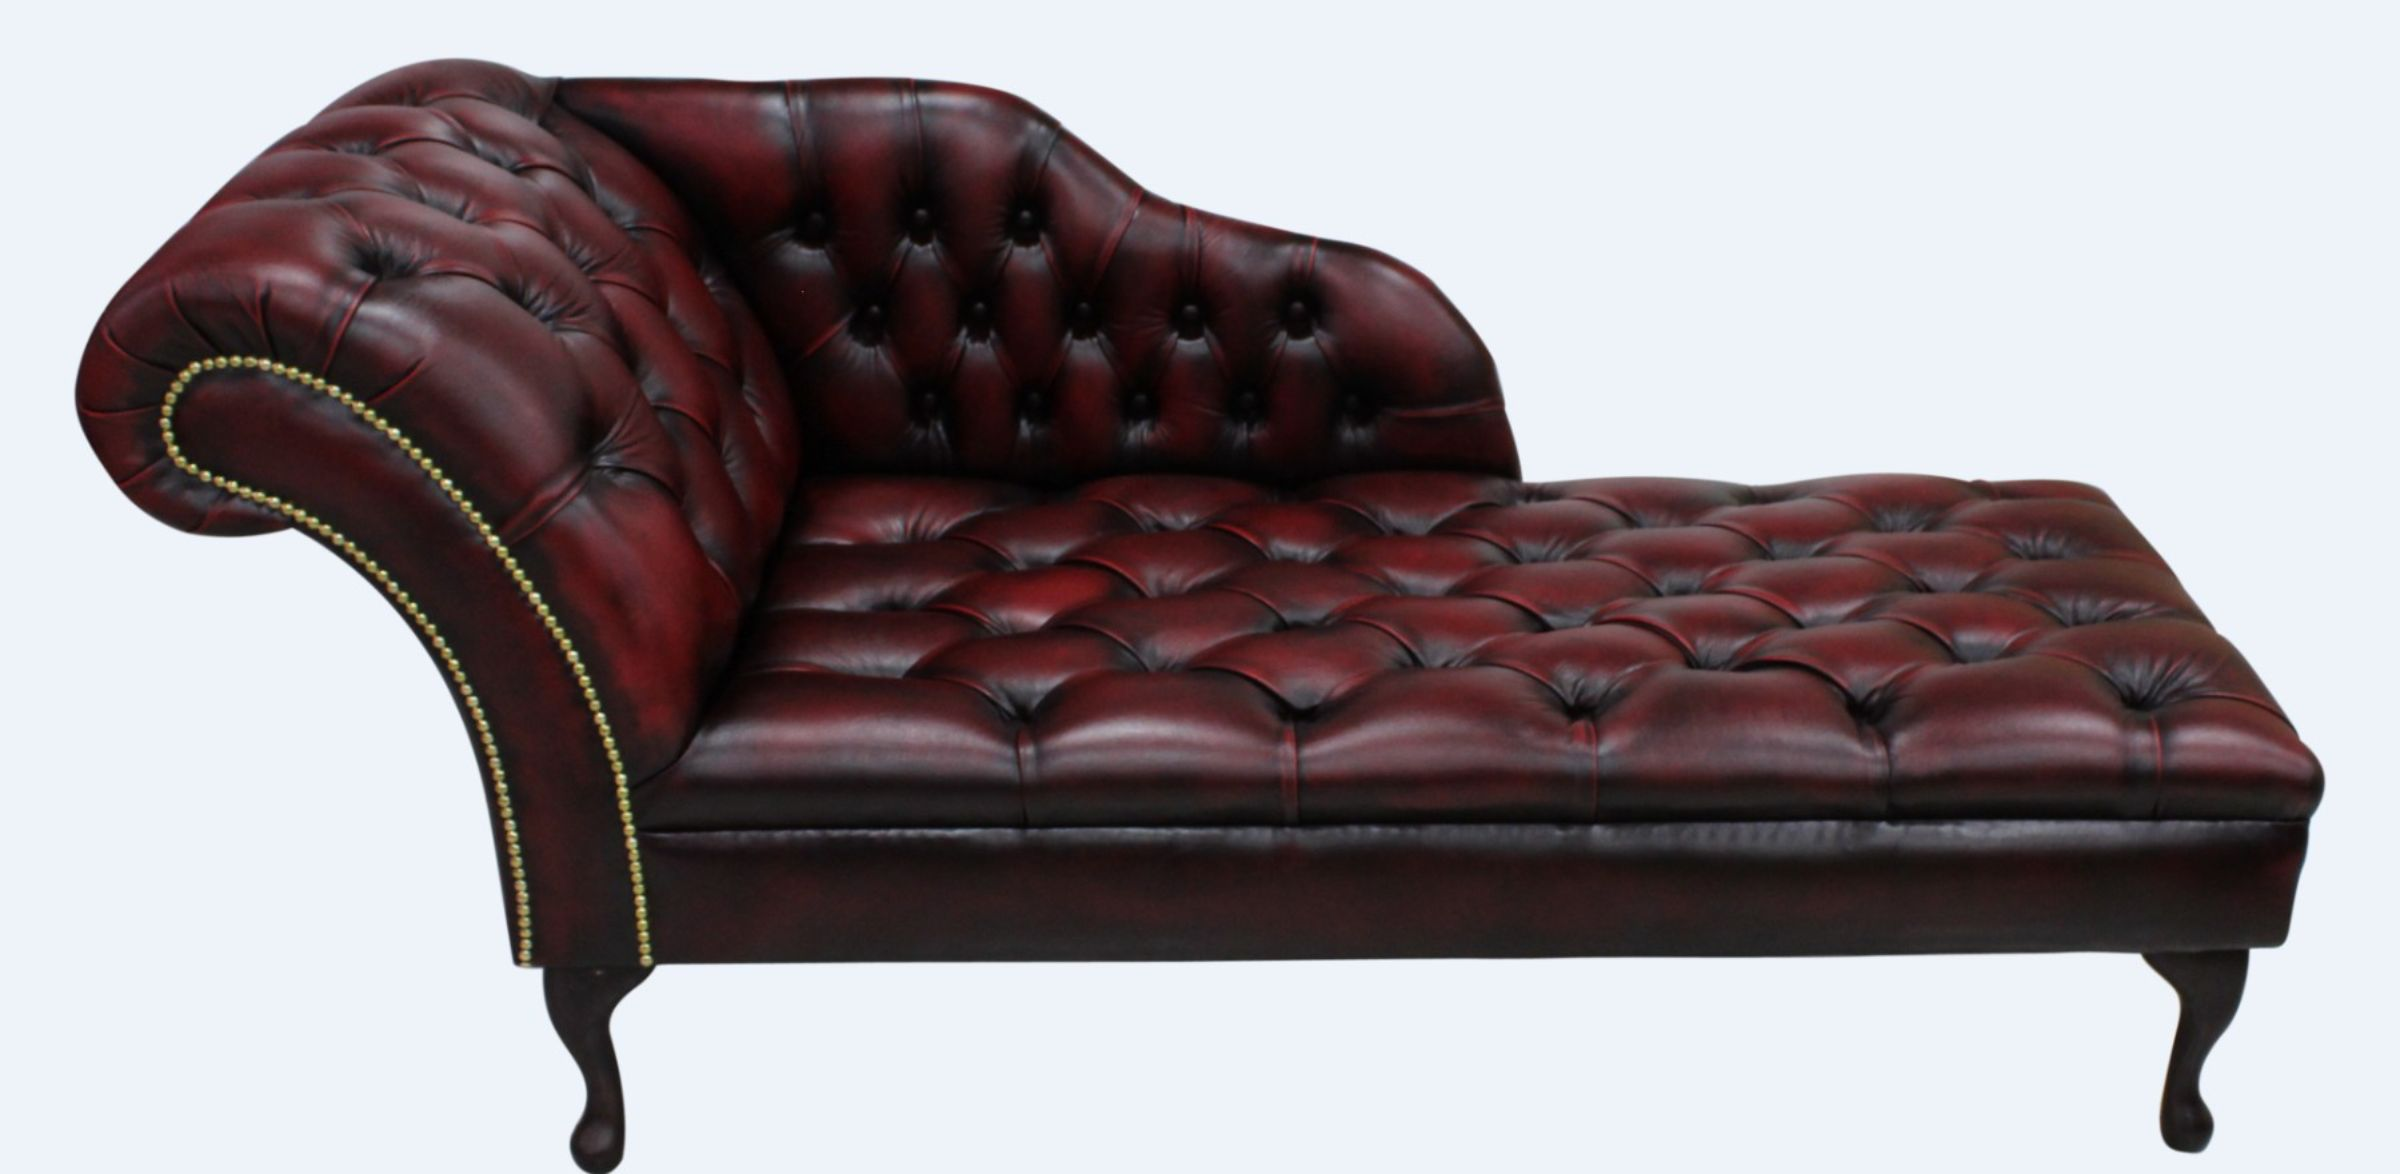 Chesterfield Leather Chaise Lounge Button Seat Day Bed